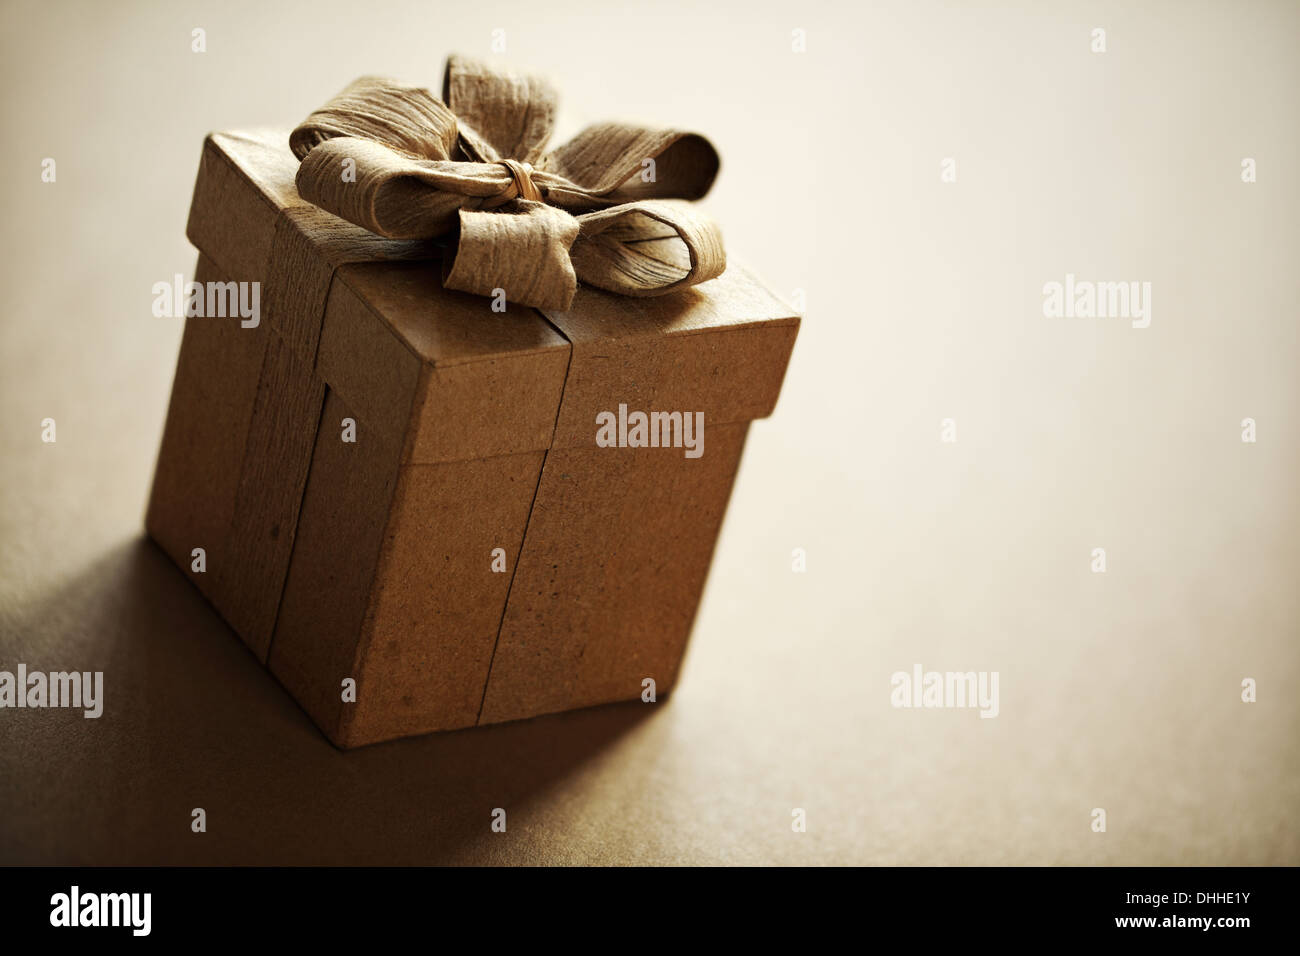 Gift box or Christmas present - Stock Image